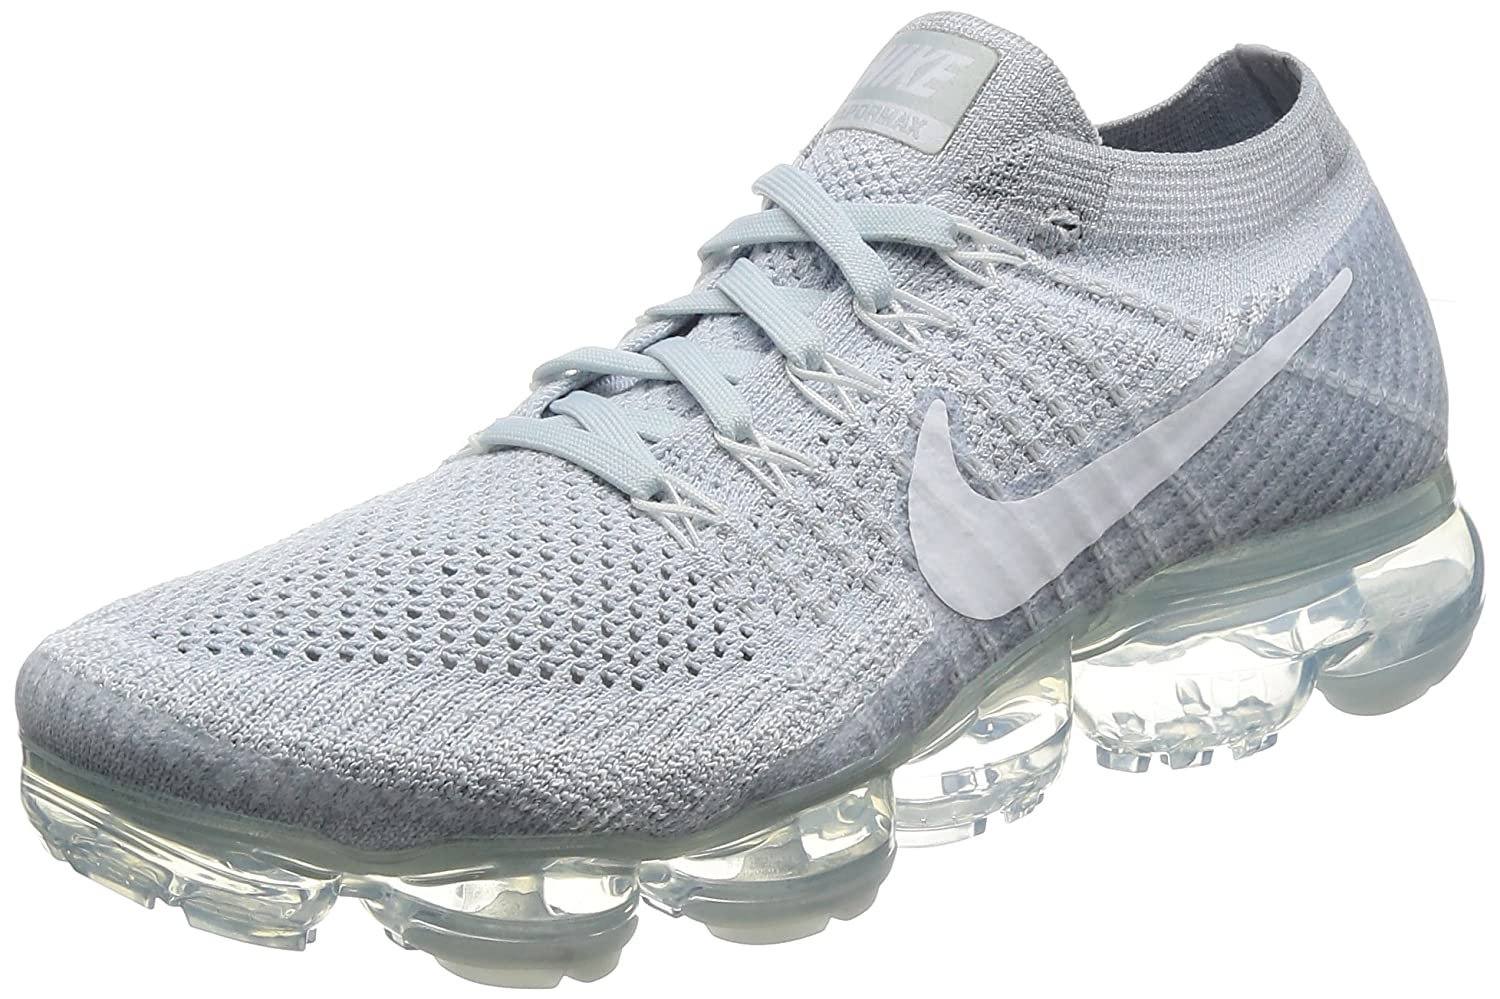 best cheap bfafc 59f72 Amazon.com   Men s Nike Air Vapormax Flyknit Running Shoe   Fashion Sneakers